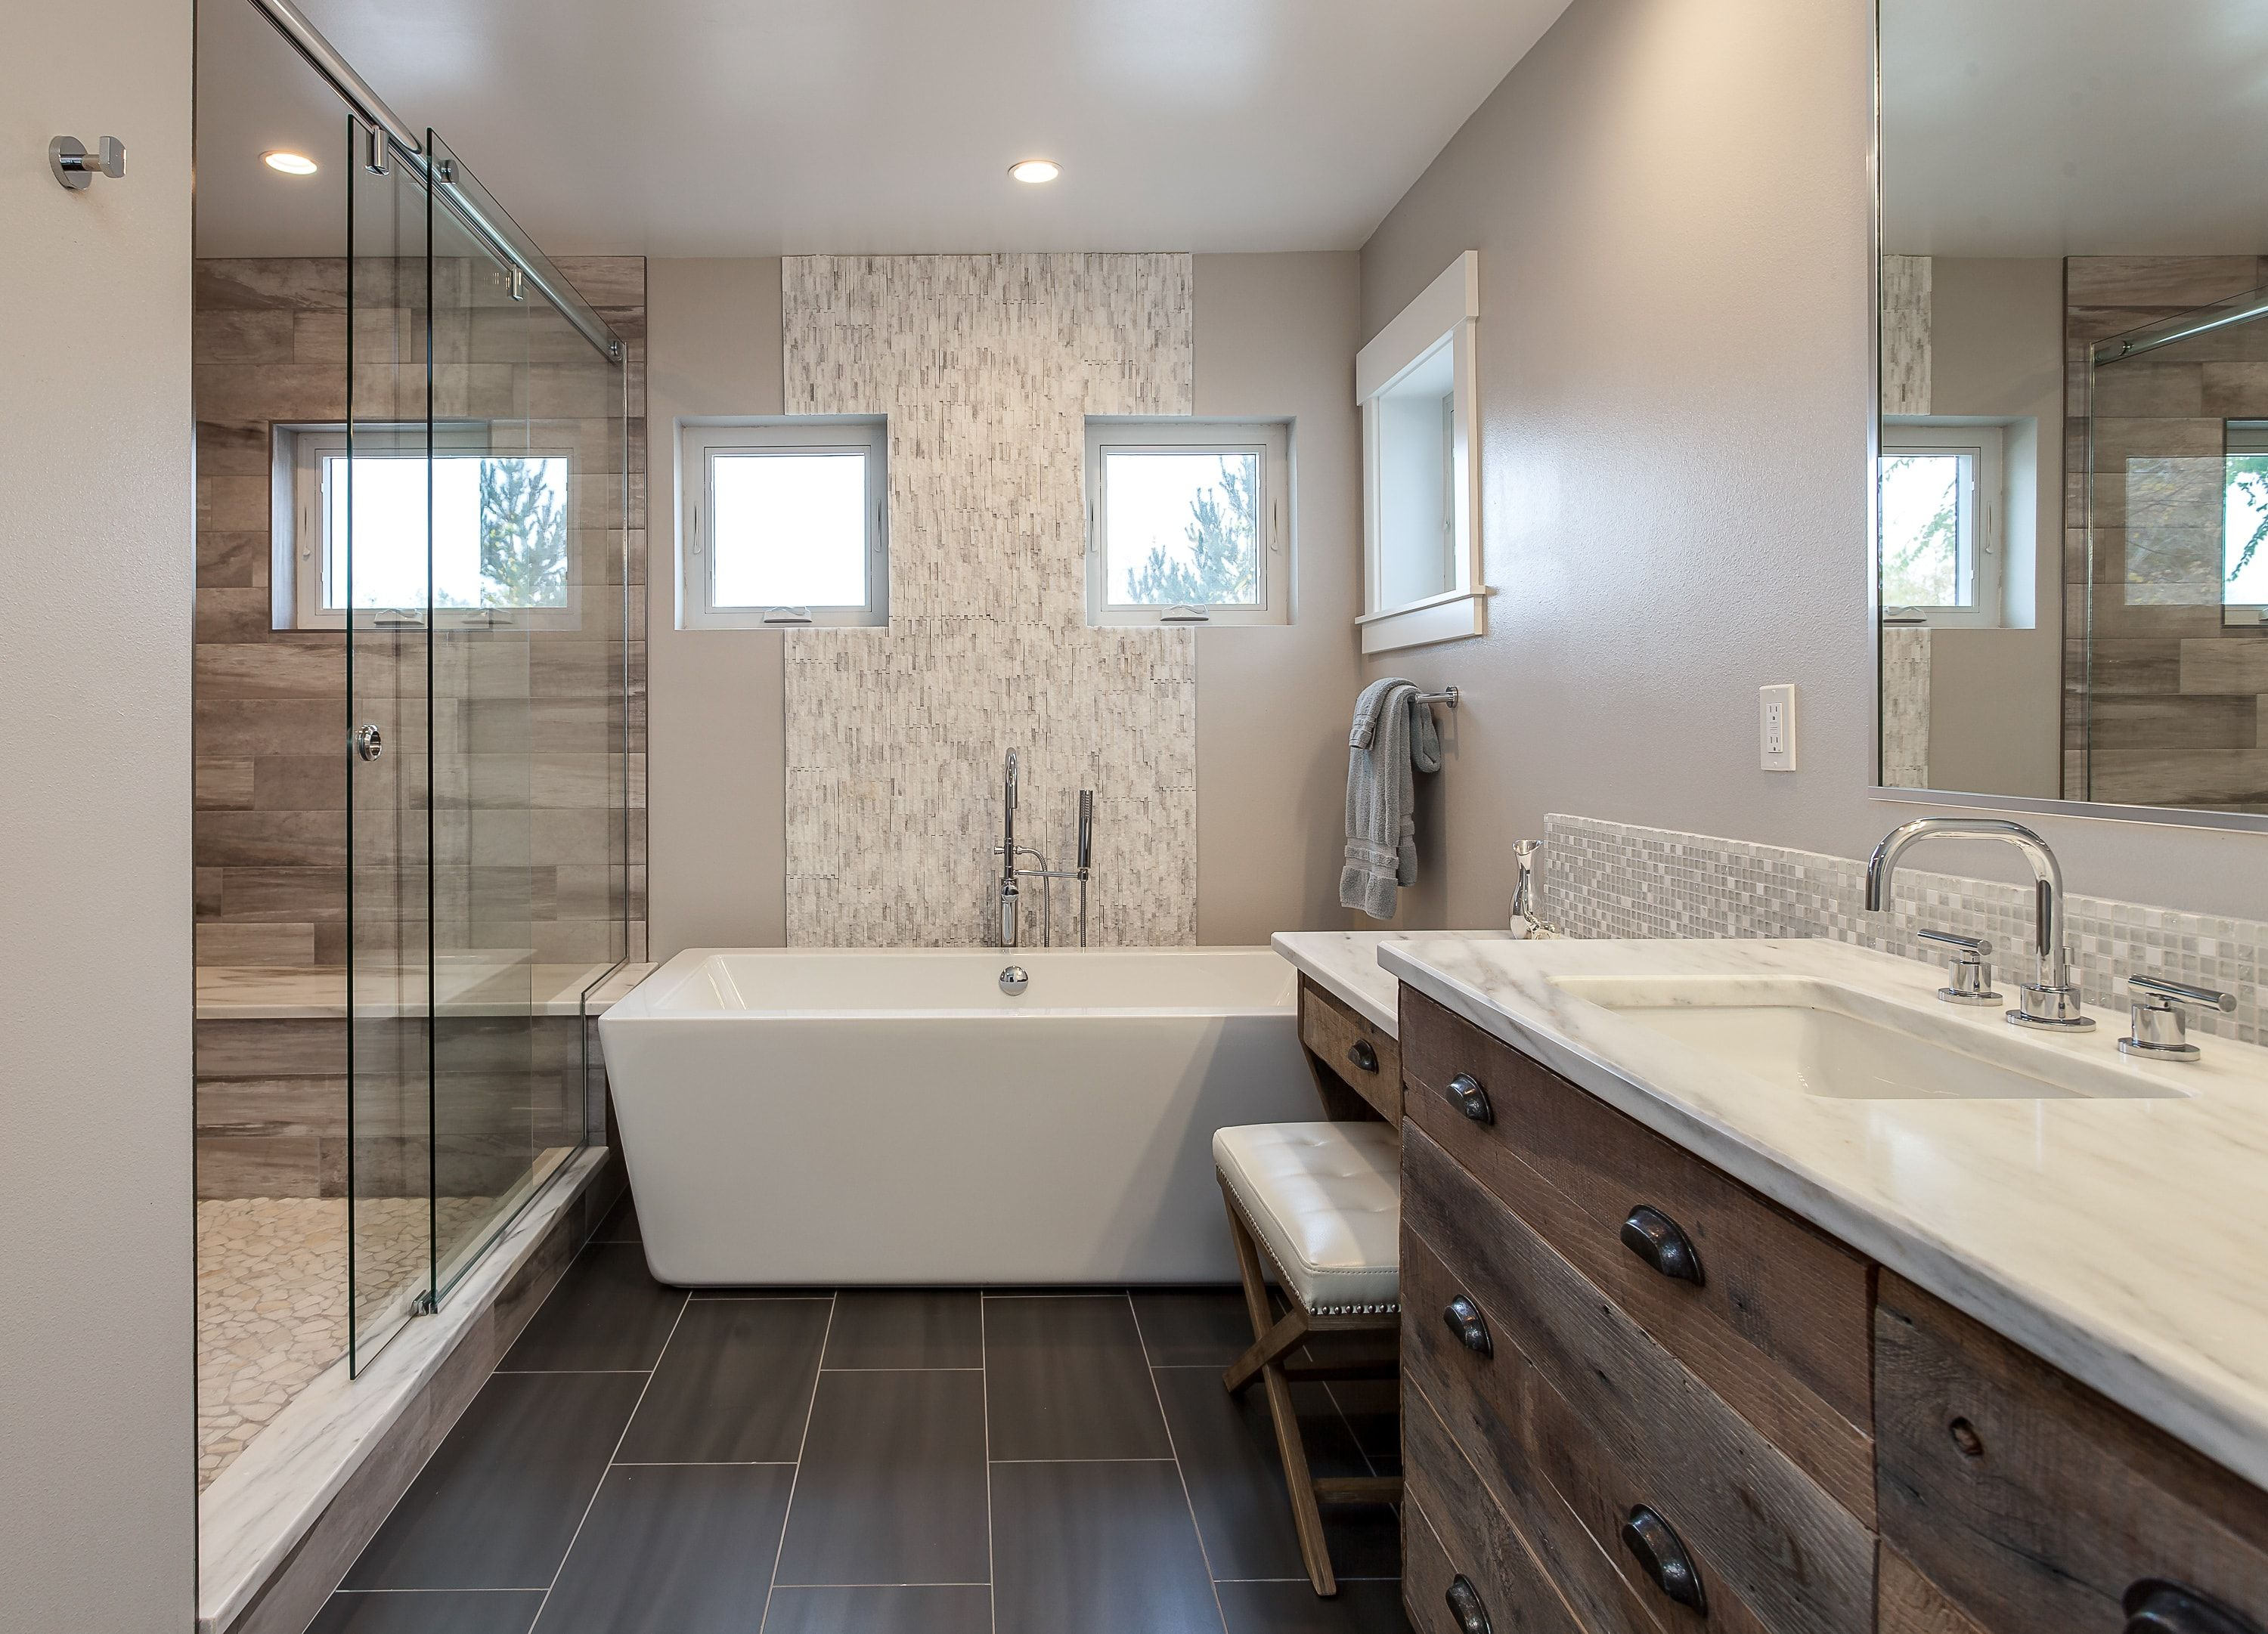 1487a63cf91 Master bathroom design ideas that range from traditional to modern and show  a variety of designs.